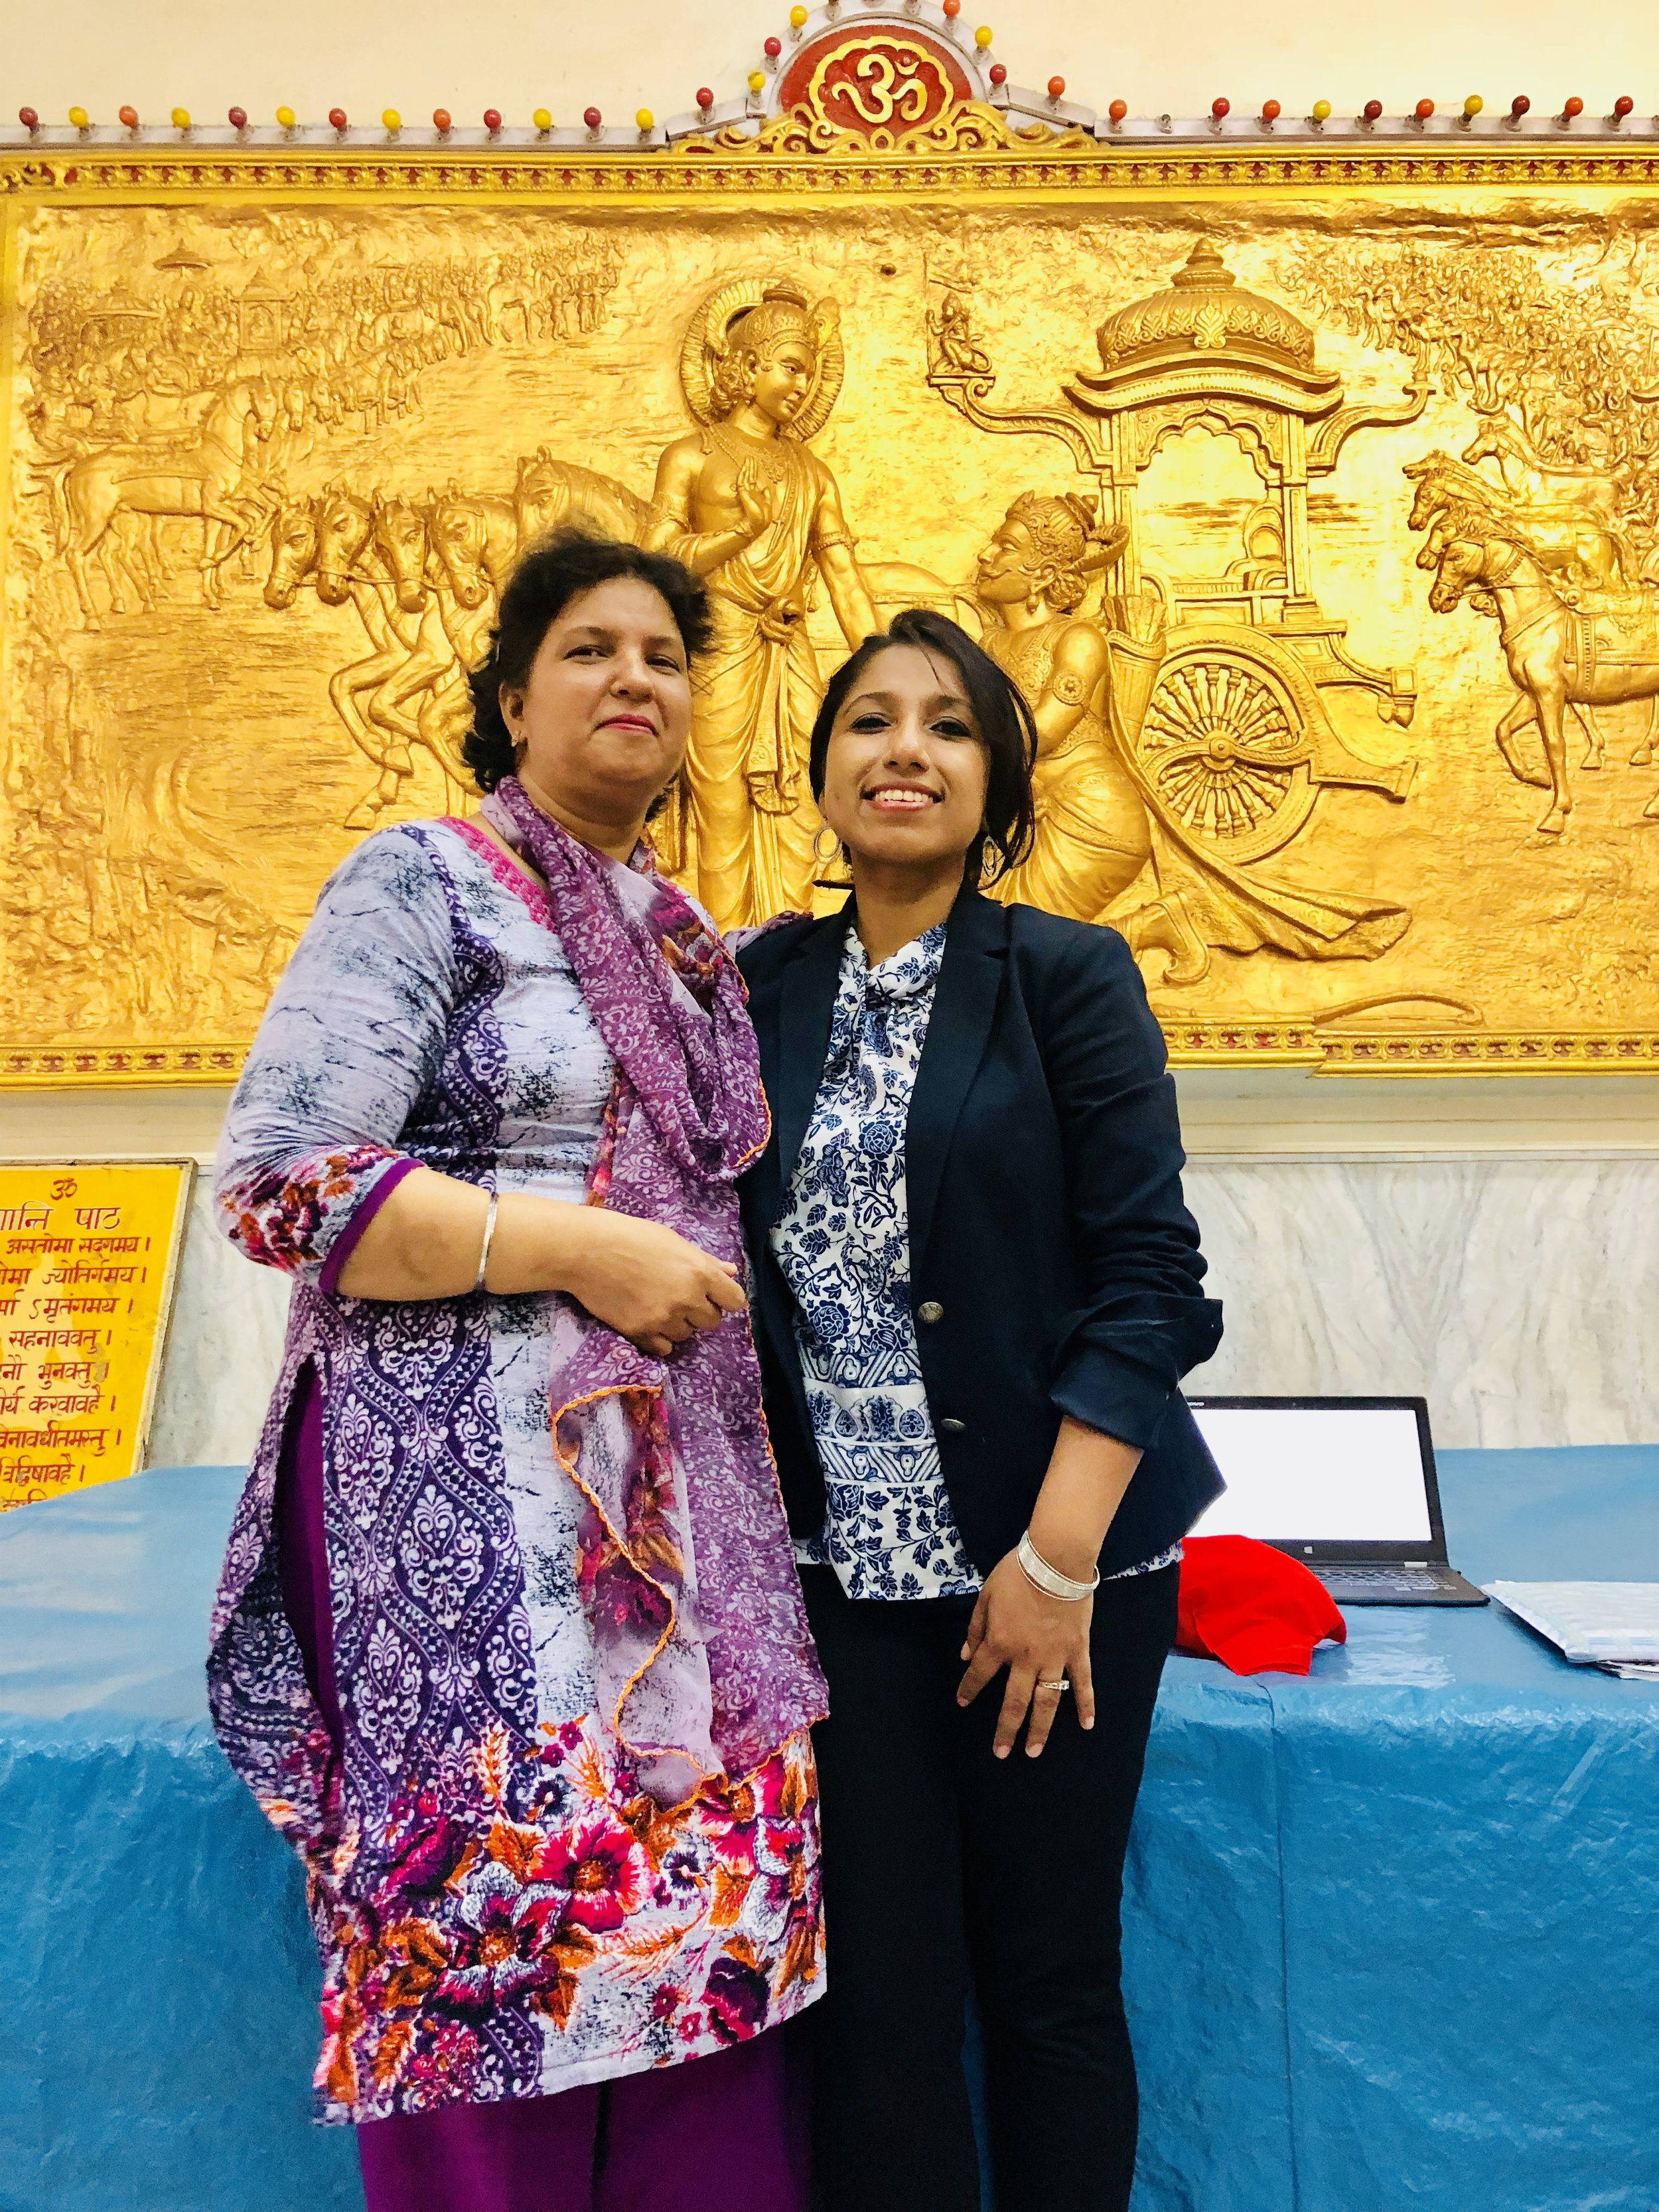 I was so proud of Mrs. Manjit Kaur, who came forward after my presentation, speaking up about her condition for the first time, breaking the barrier of shyness & talking about her journey. Mrs. Kaur was diagnosed with Metastatic Breast Cancer at the age of 43 in 2016. With the help & support of her loving husband, kids, parents, in-laws, members of her joint family, her tremendous believe in God, and her own will power, she proudly is a survivor today. I cannot even express how happy I am today for Mrs. Manjit Kaur who has gathered the courage to come forward and now she is an inspiration for all the women & men with Metastatic Breast Cancer. Hats off to Mrs. Manjit Kaur – a Hero!! Interview with Mrs. Kaur and full story & family photos will be published on BCH website.